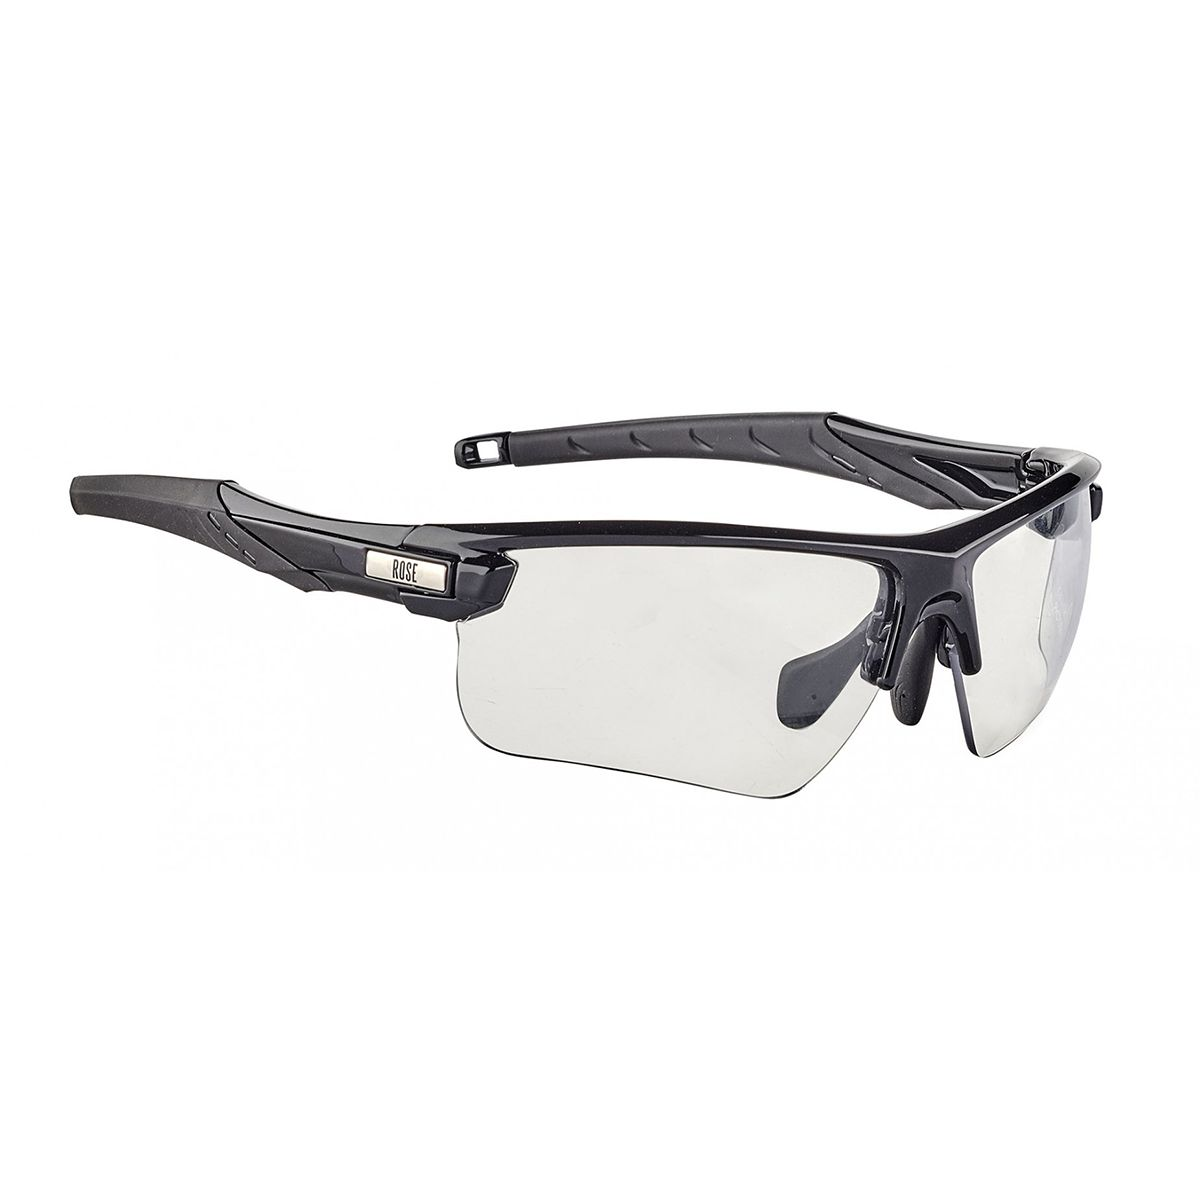 PS 07 photochromic glasses